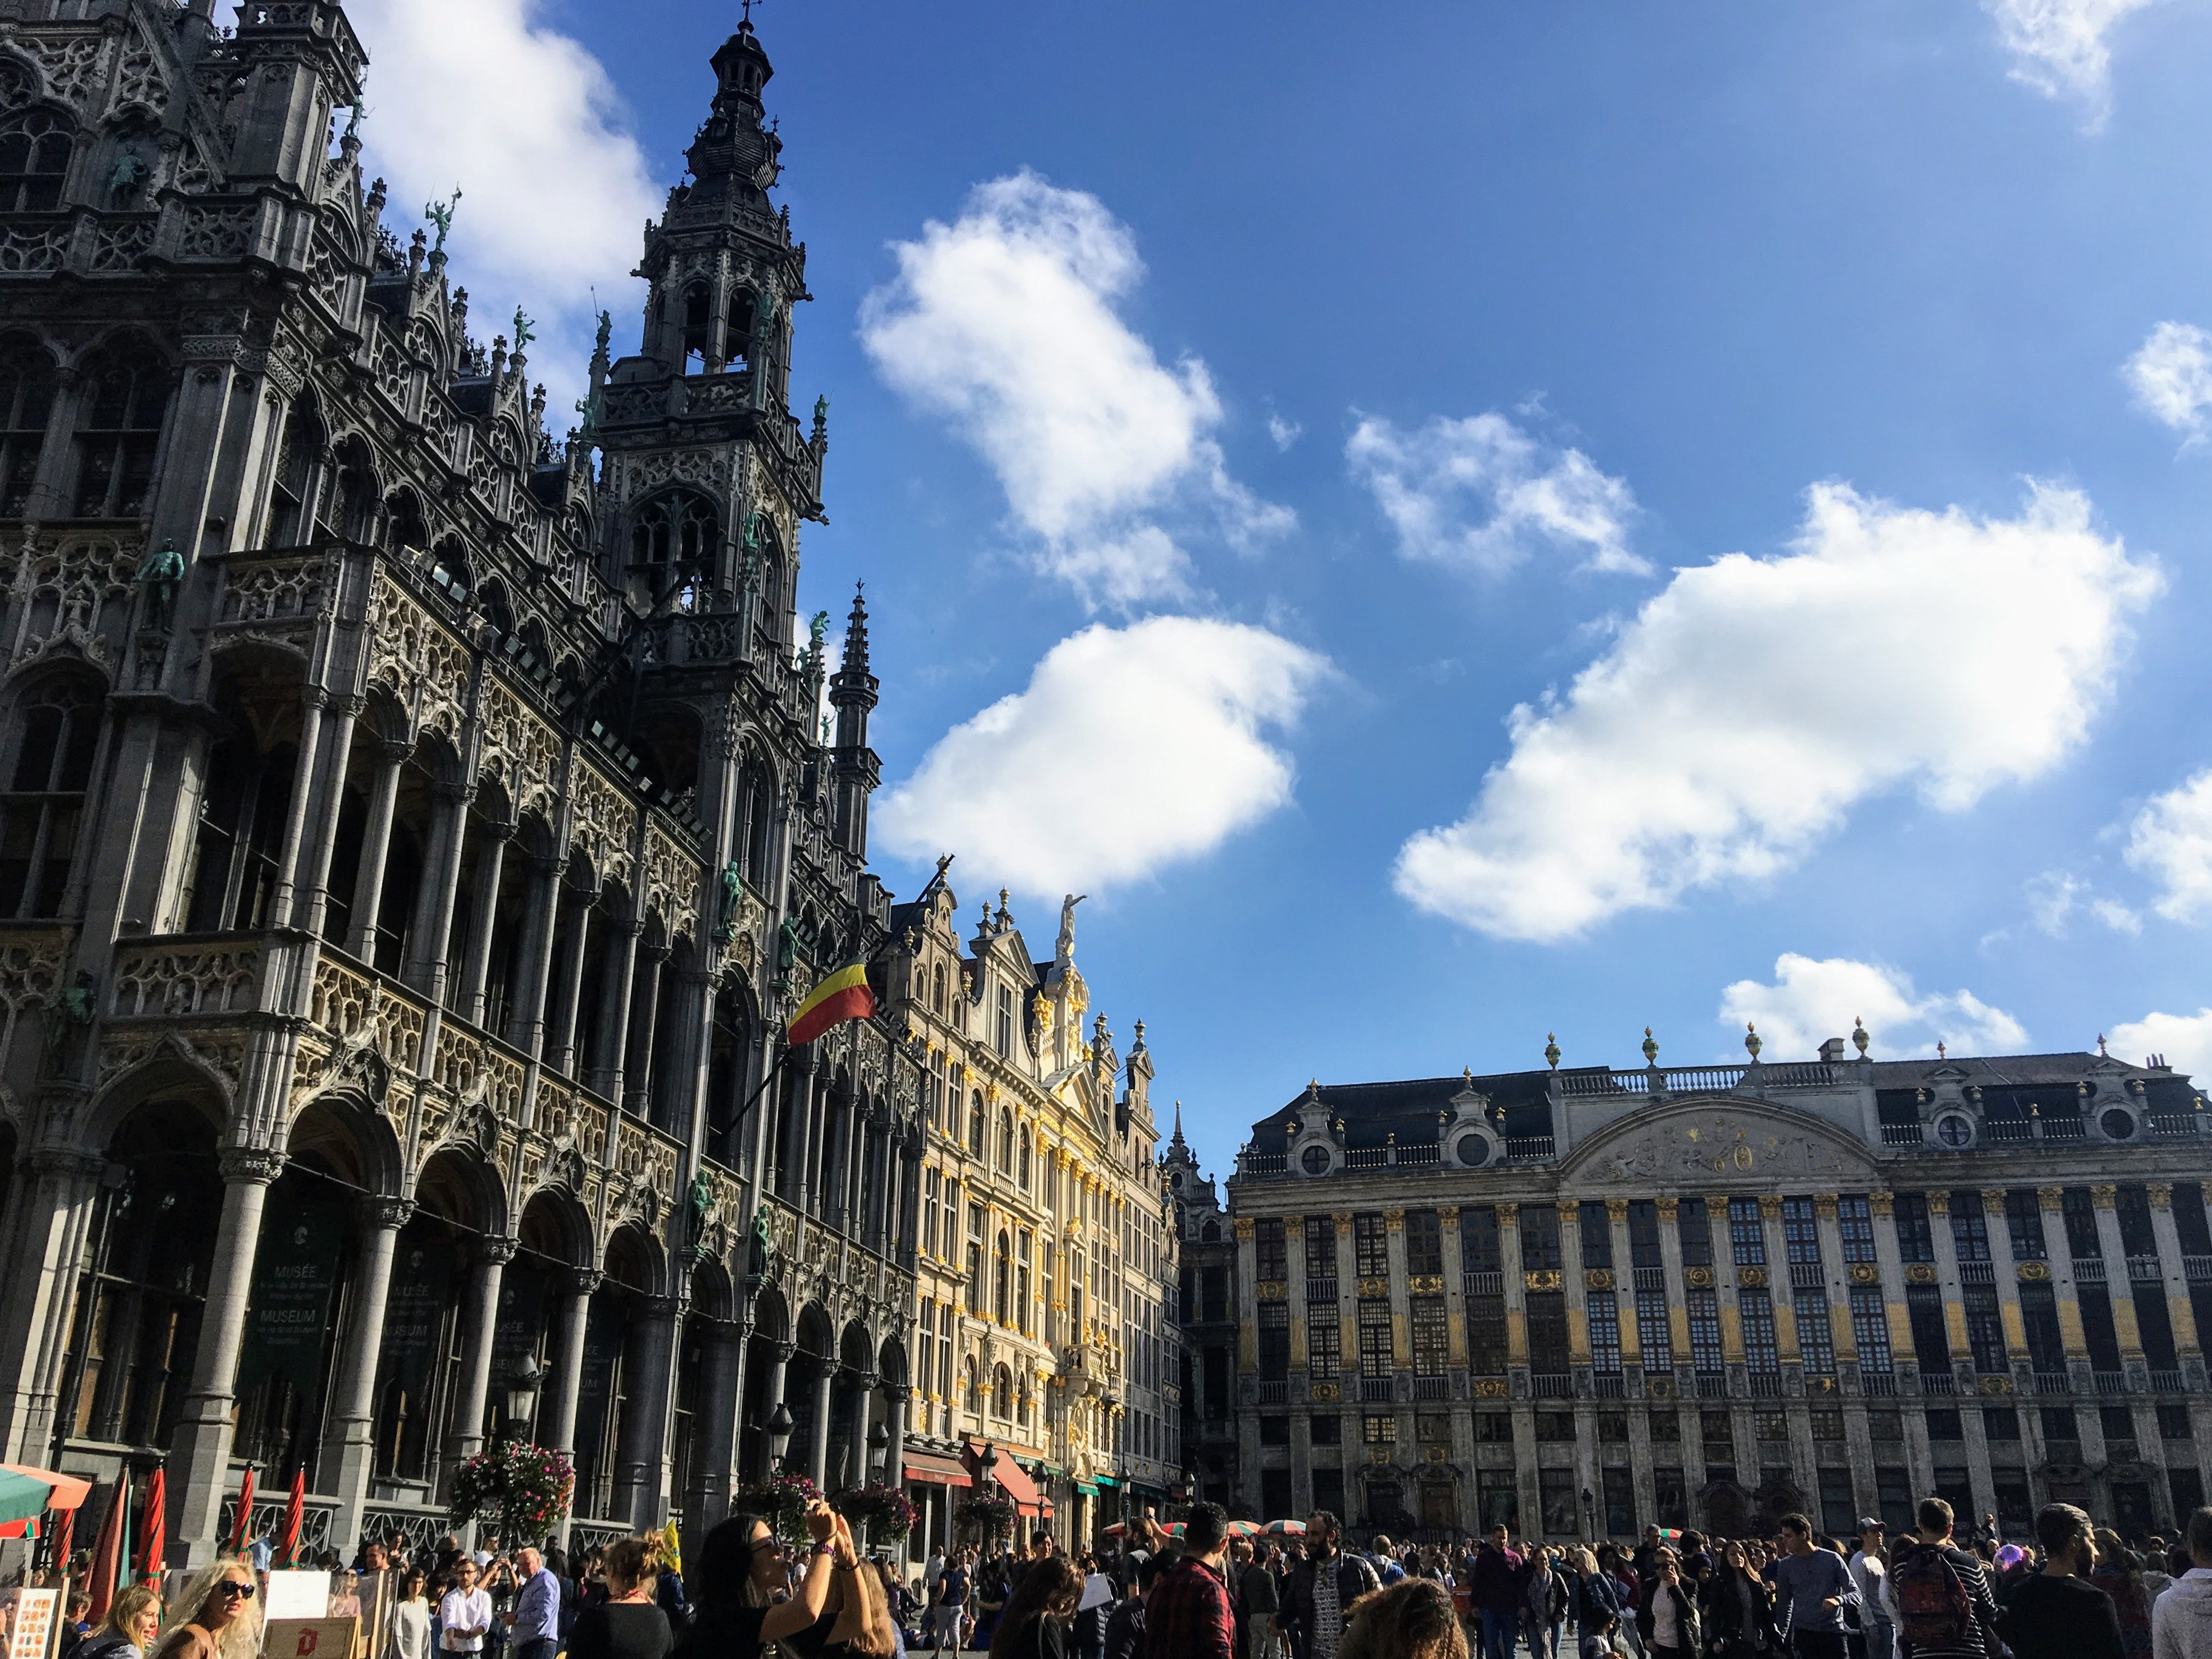 The Grand Place on a sunny day in Brussels, Belgium